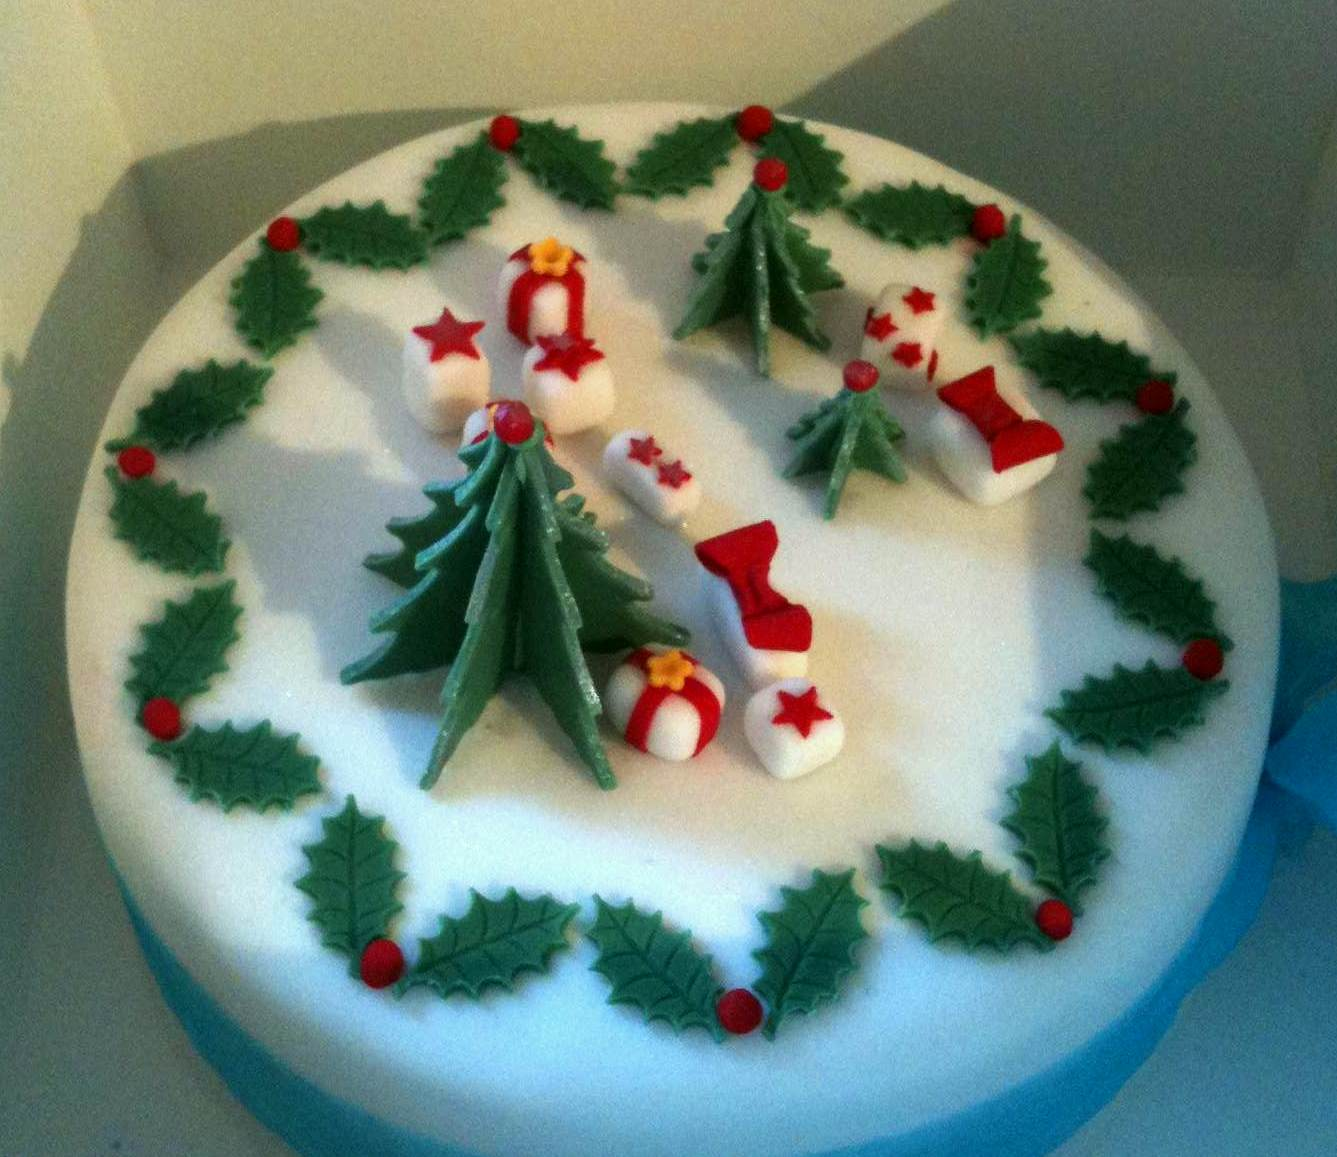 PicturesPool: Christmas Cakes Pictures